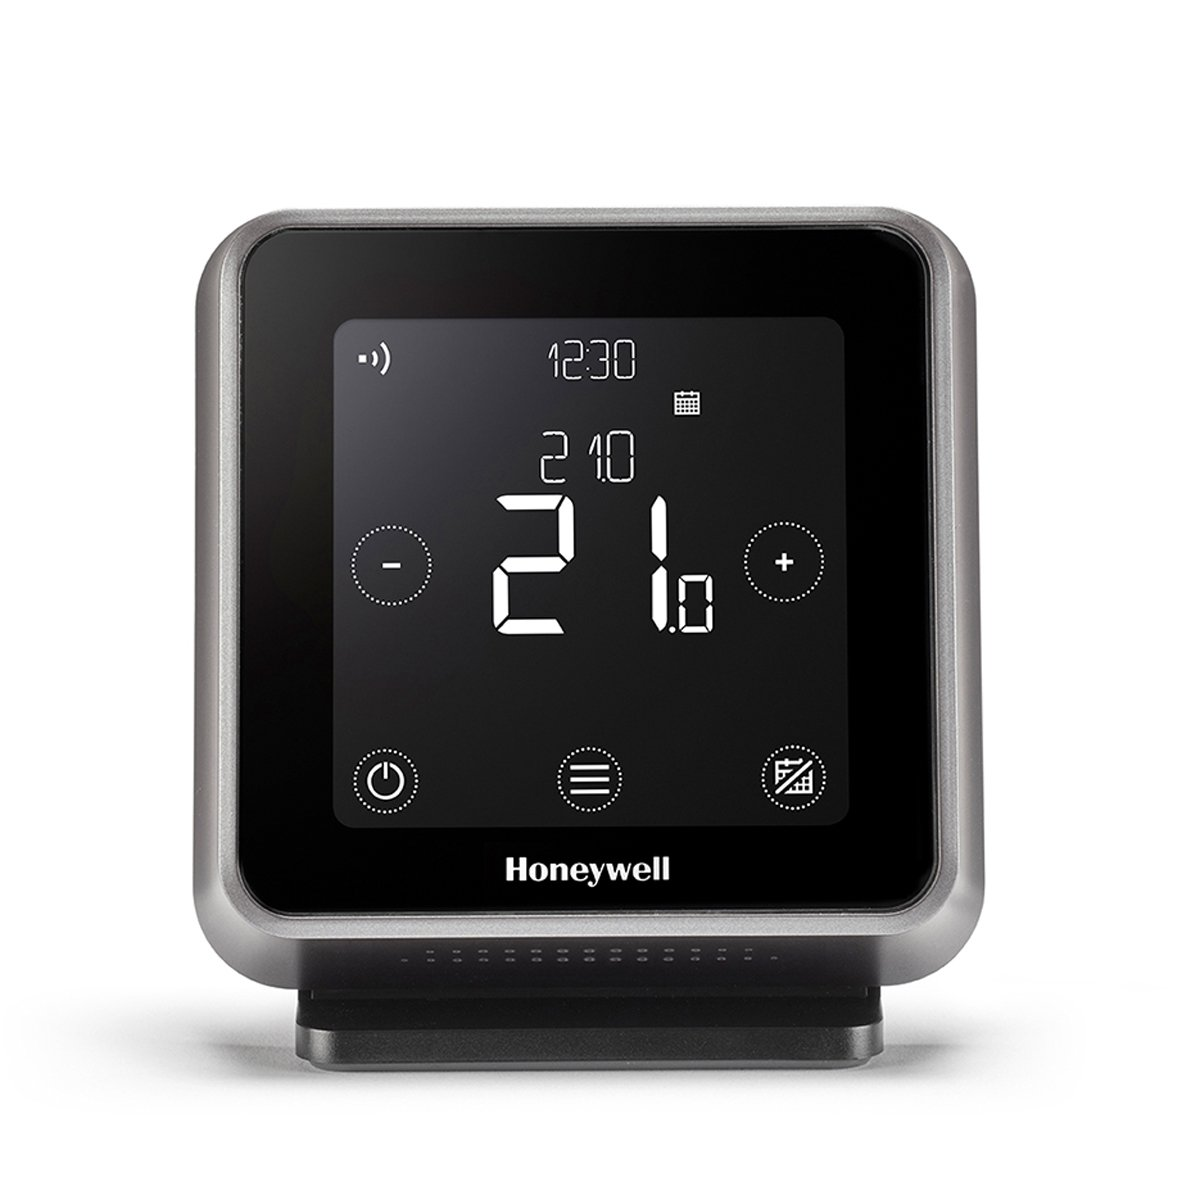 Honeywell T6r Smart Thermostat Works With Apple Homekit And Amazon Wiring Guide For Domestic Heating Systems By Free Download Alexa Diy Tools